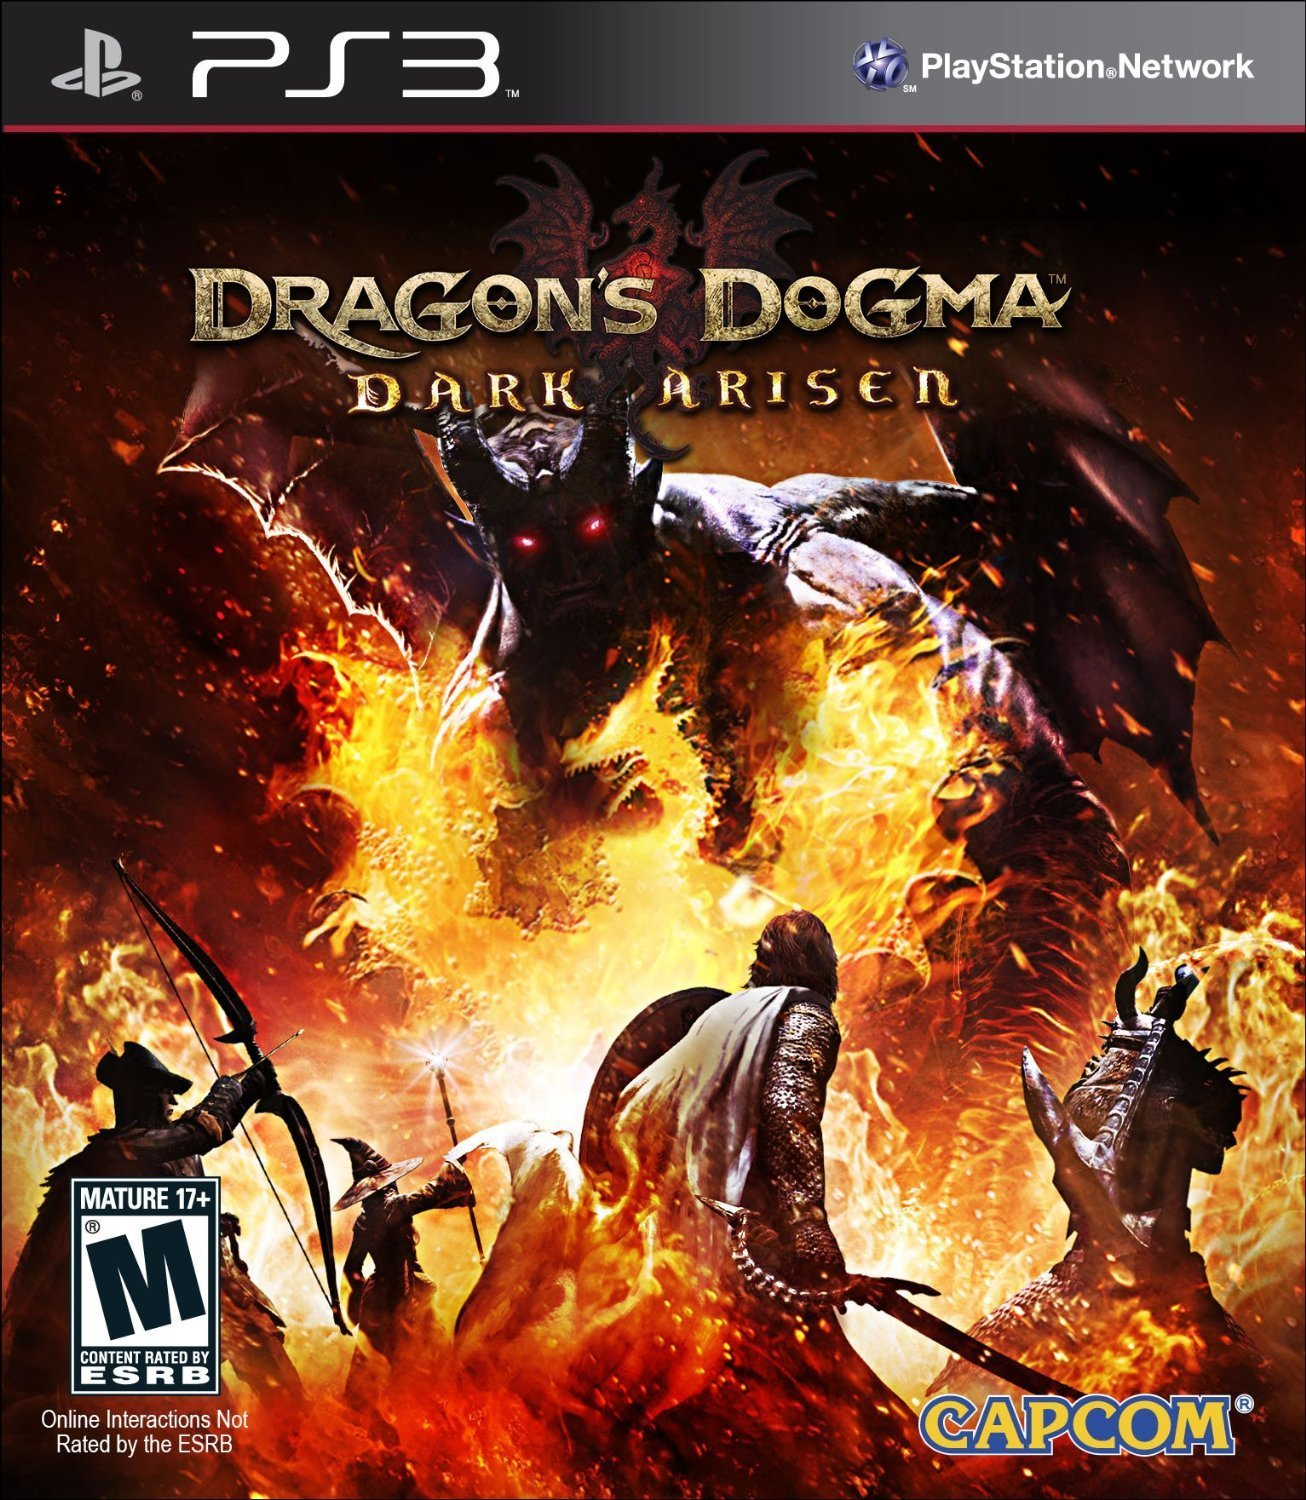 Dragon's Dogma: Dark Arisen